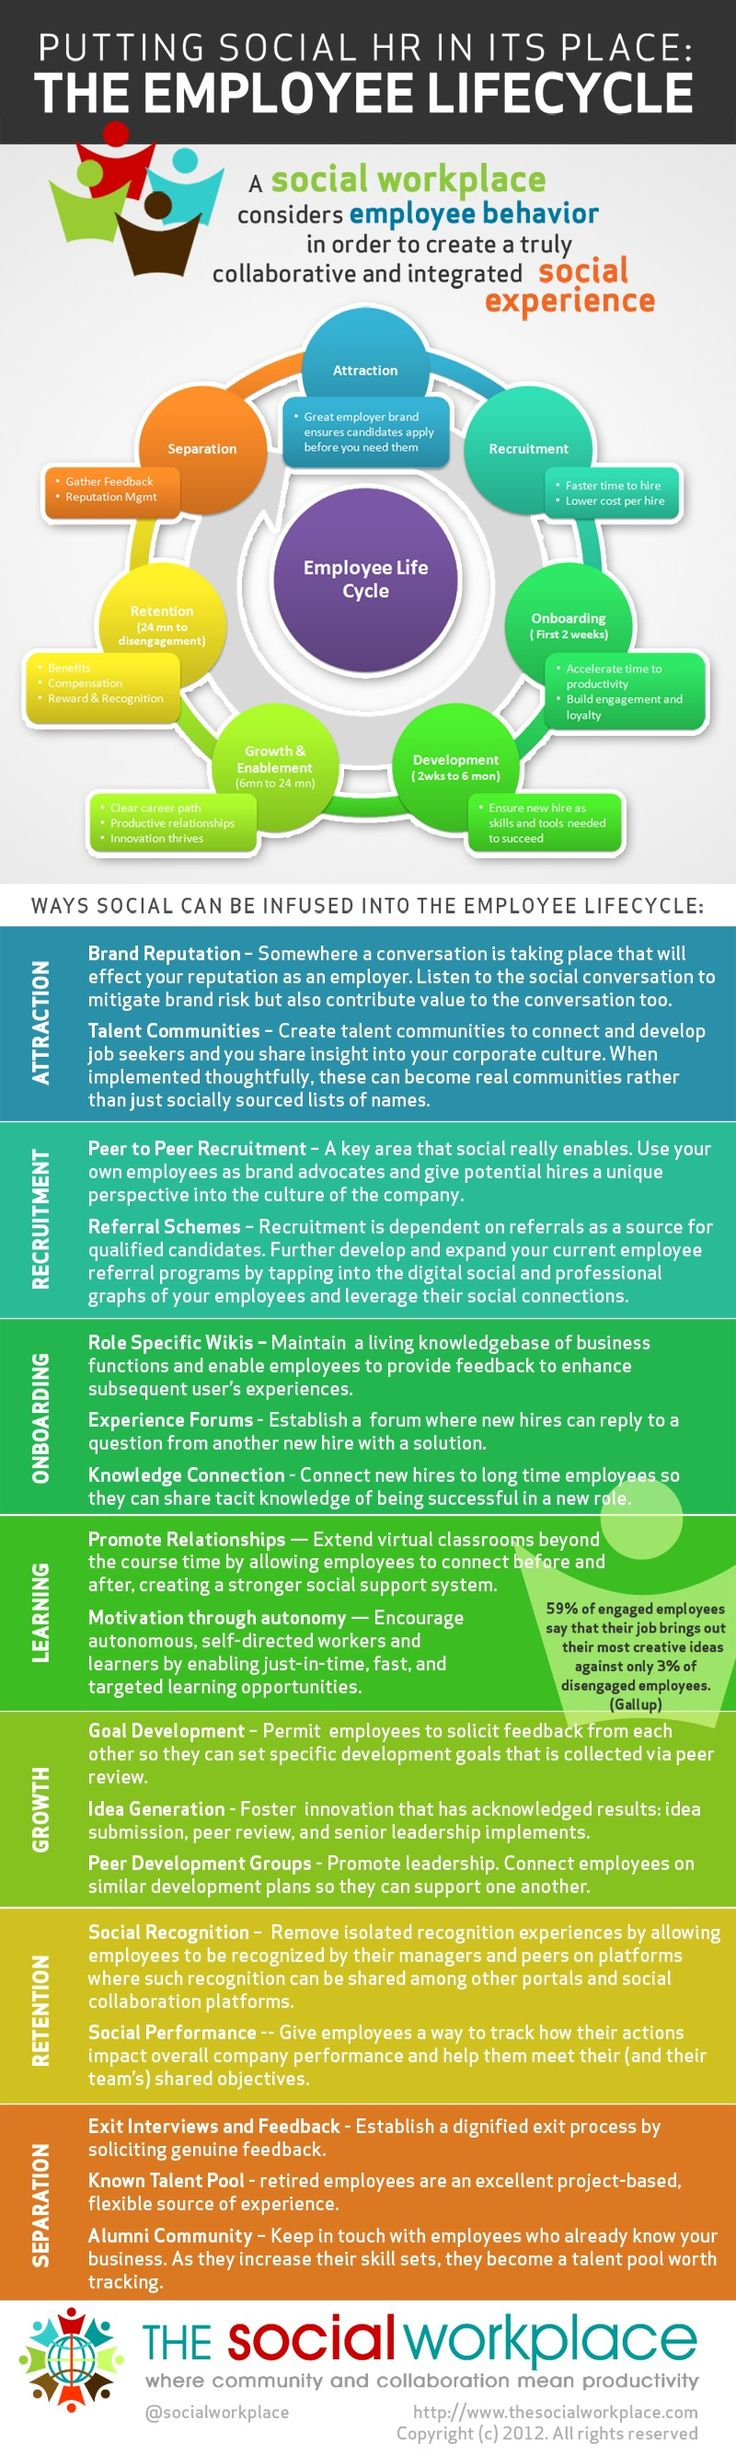 best images about human resources infographics putting social in hr